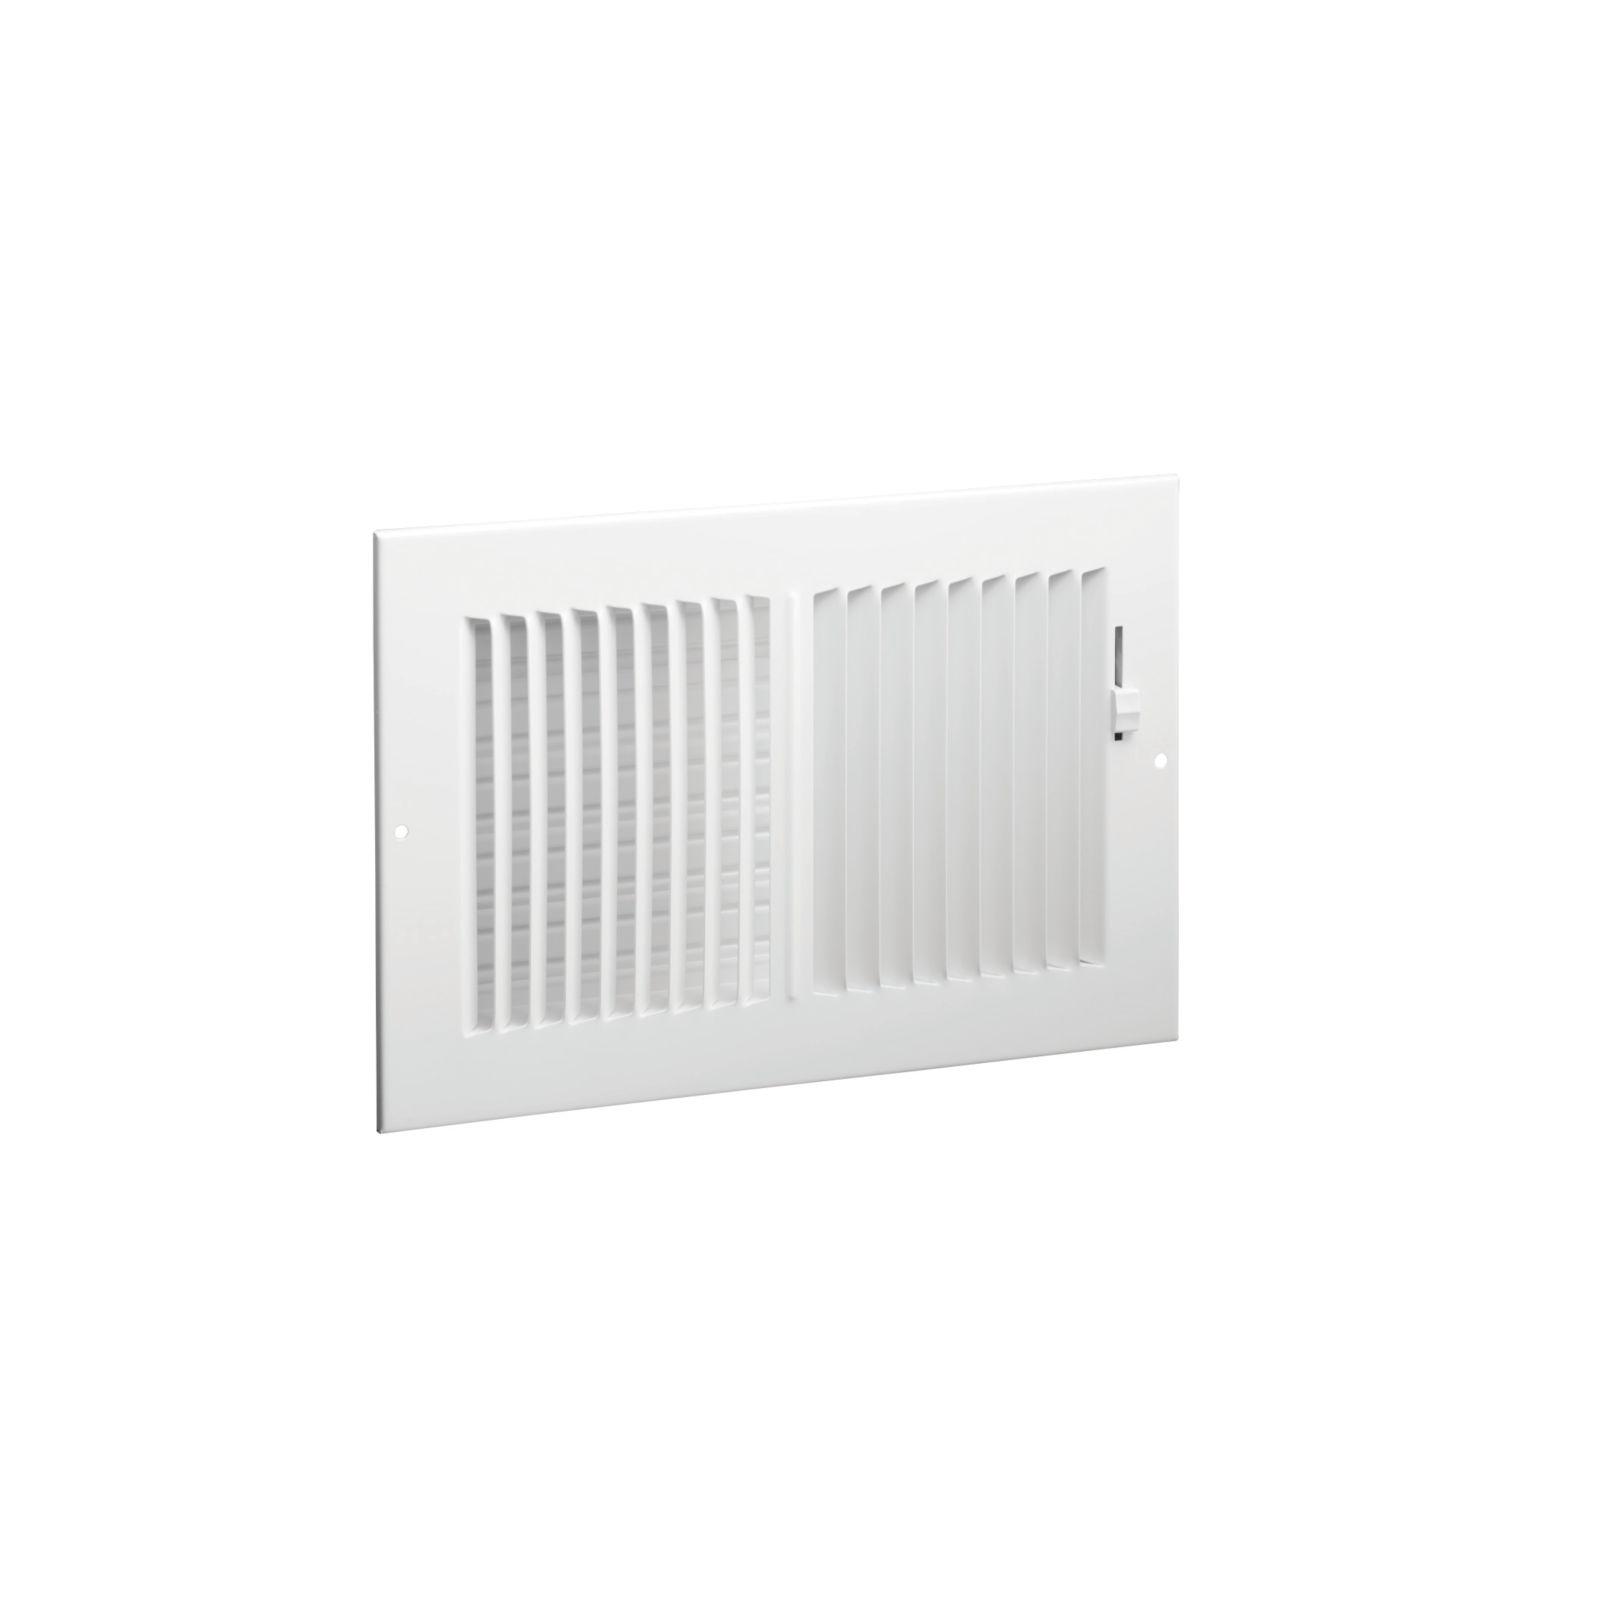 "Hart & Cooley 703909 - #682M Steel 2-Way Sidewall/Ceiling Register, Multi-Shutter Damper with Metal Handle, White, 10"" X 6"""